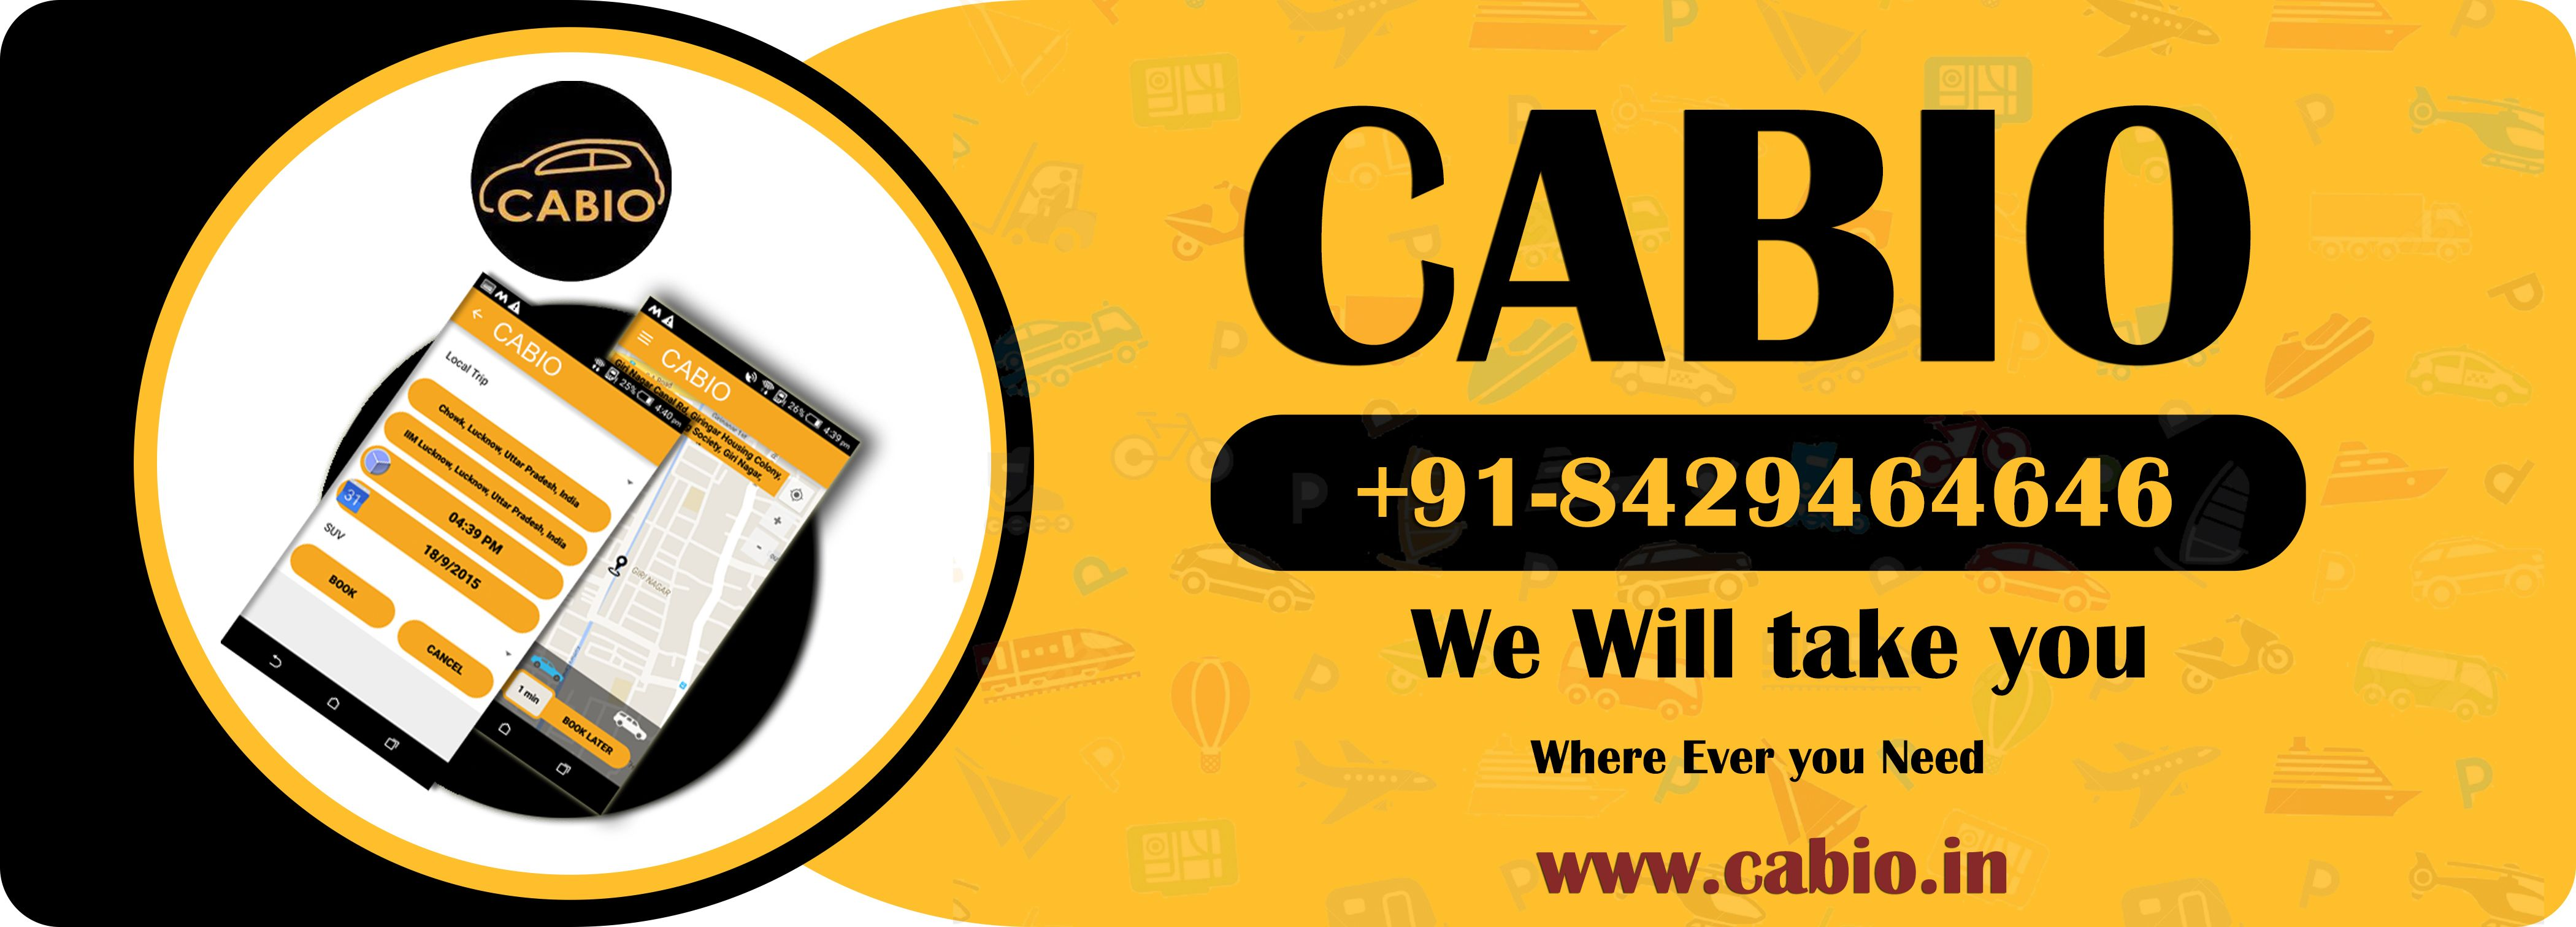 Best taxi service in lucknow best